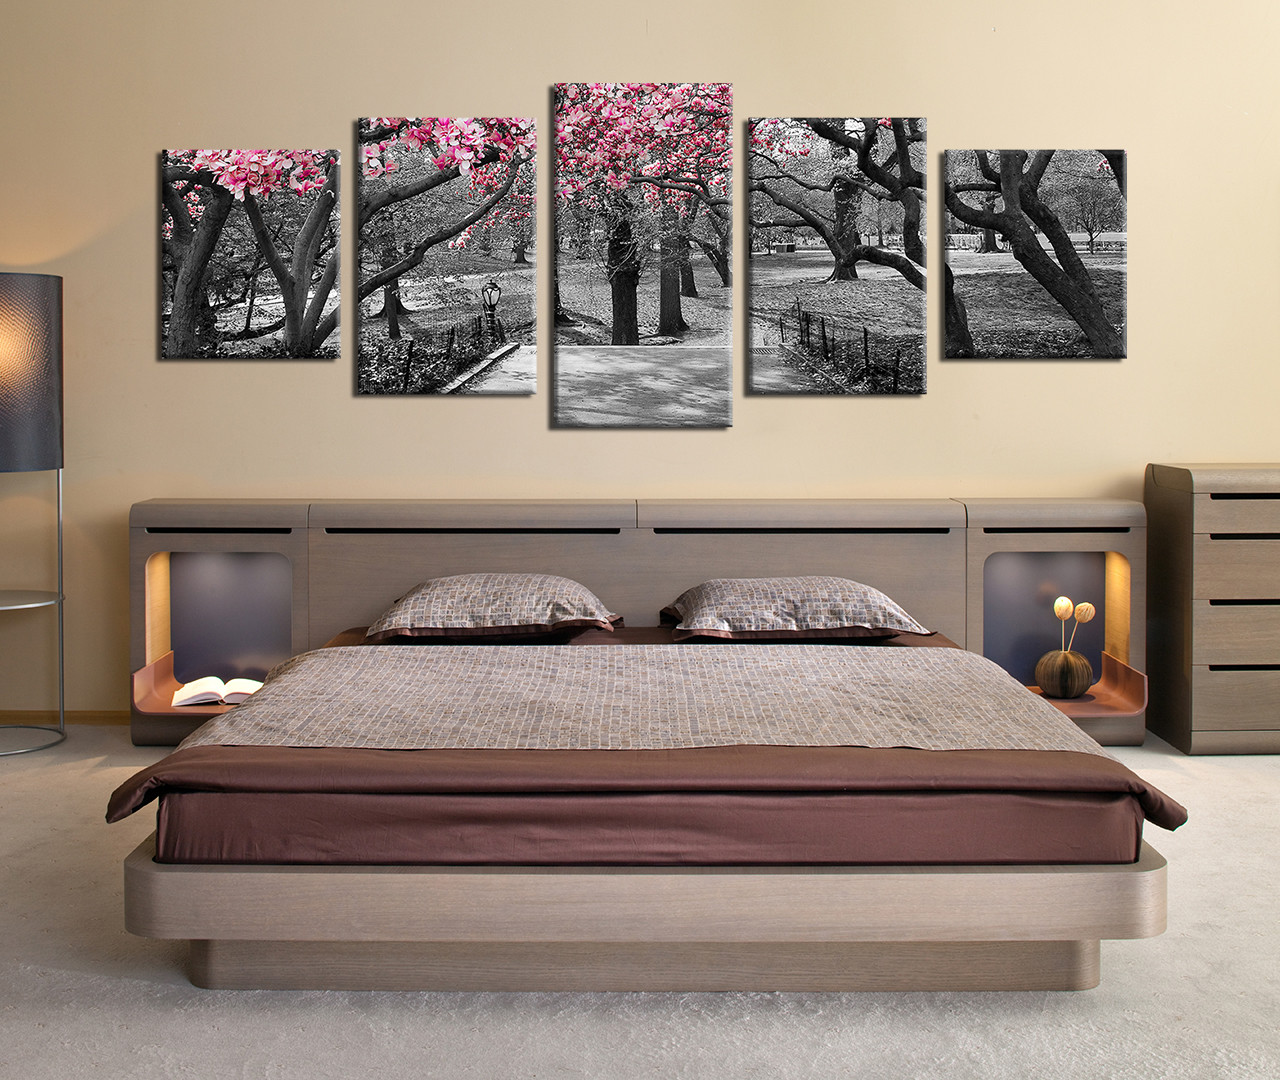 Beige Black Wall Art - Bedroom Canvas or Prints Bathroom Decor - Bedroom  Pictures - Flower Wall Art - Flower Outline Set of 3 Home Decor